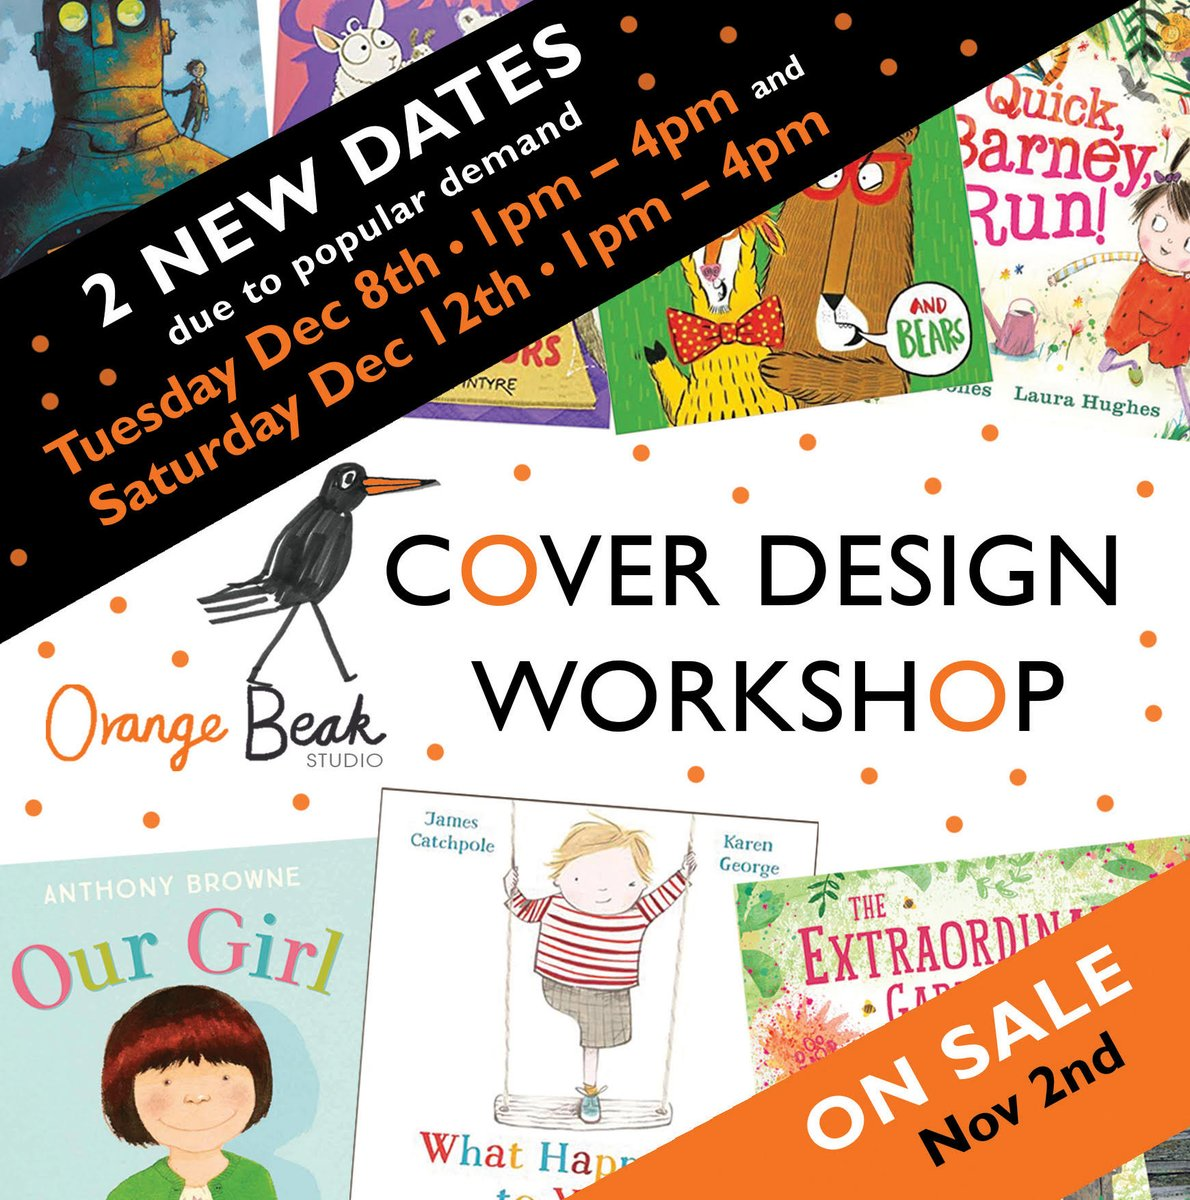 Thank you so much for sharing @jabberworks For anyone interested our next cover design workshops are going to be on 8th and 12th December. Tickets will be on sale from 10am on 2nd November! #coverdesign #picturebooks https://t.co/Cg9Nm6yTrI https://t.co/mcXTUoi0mb